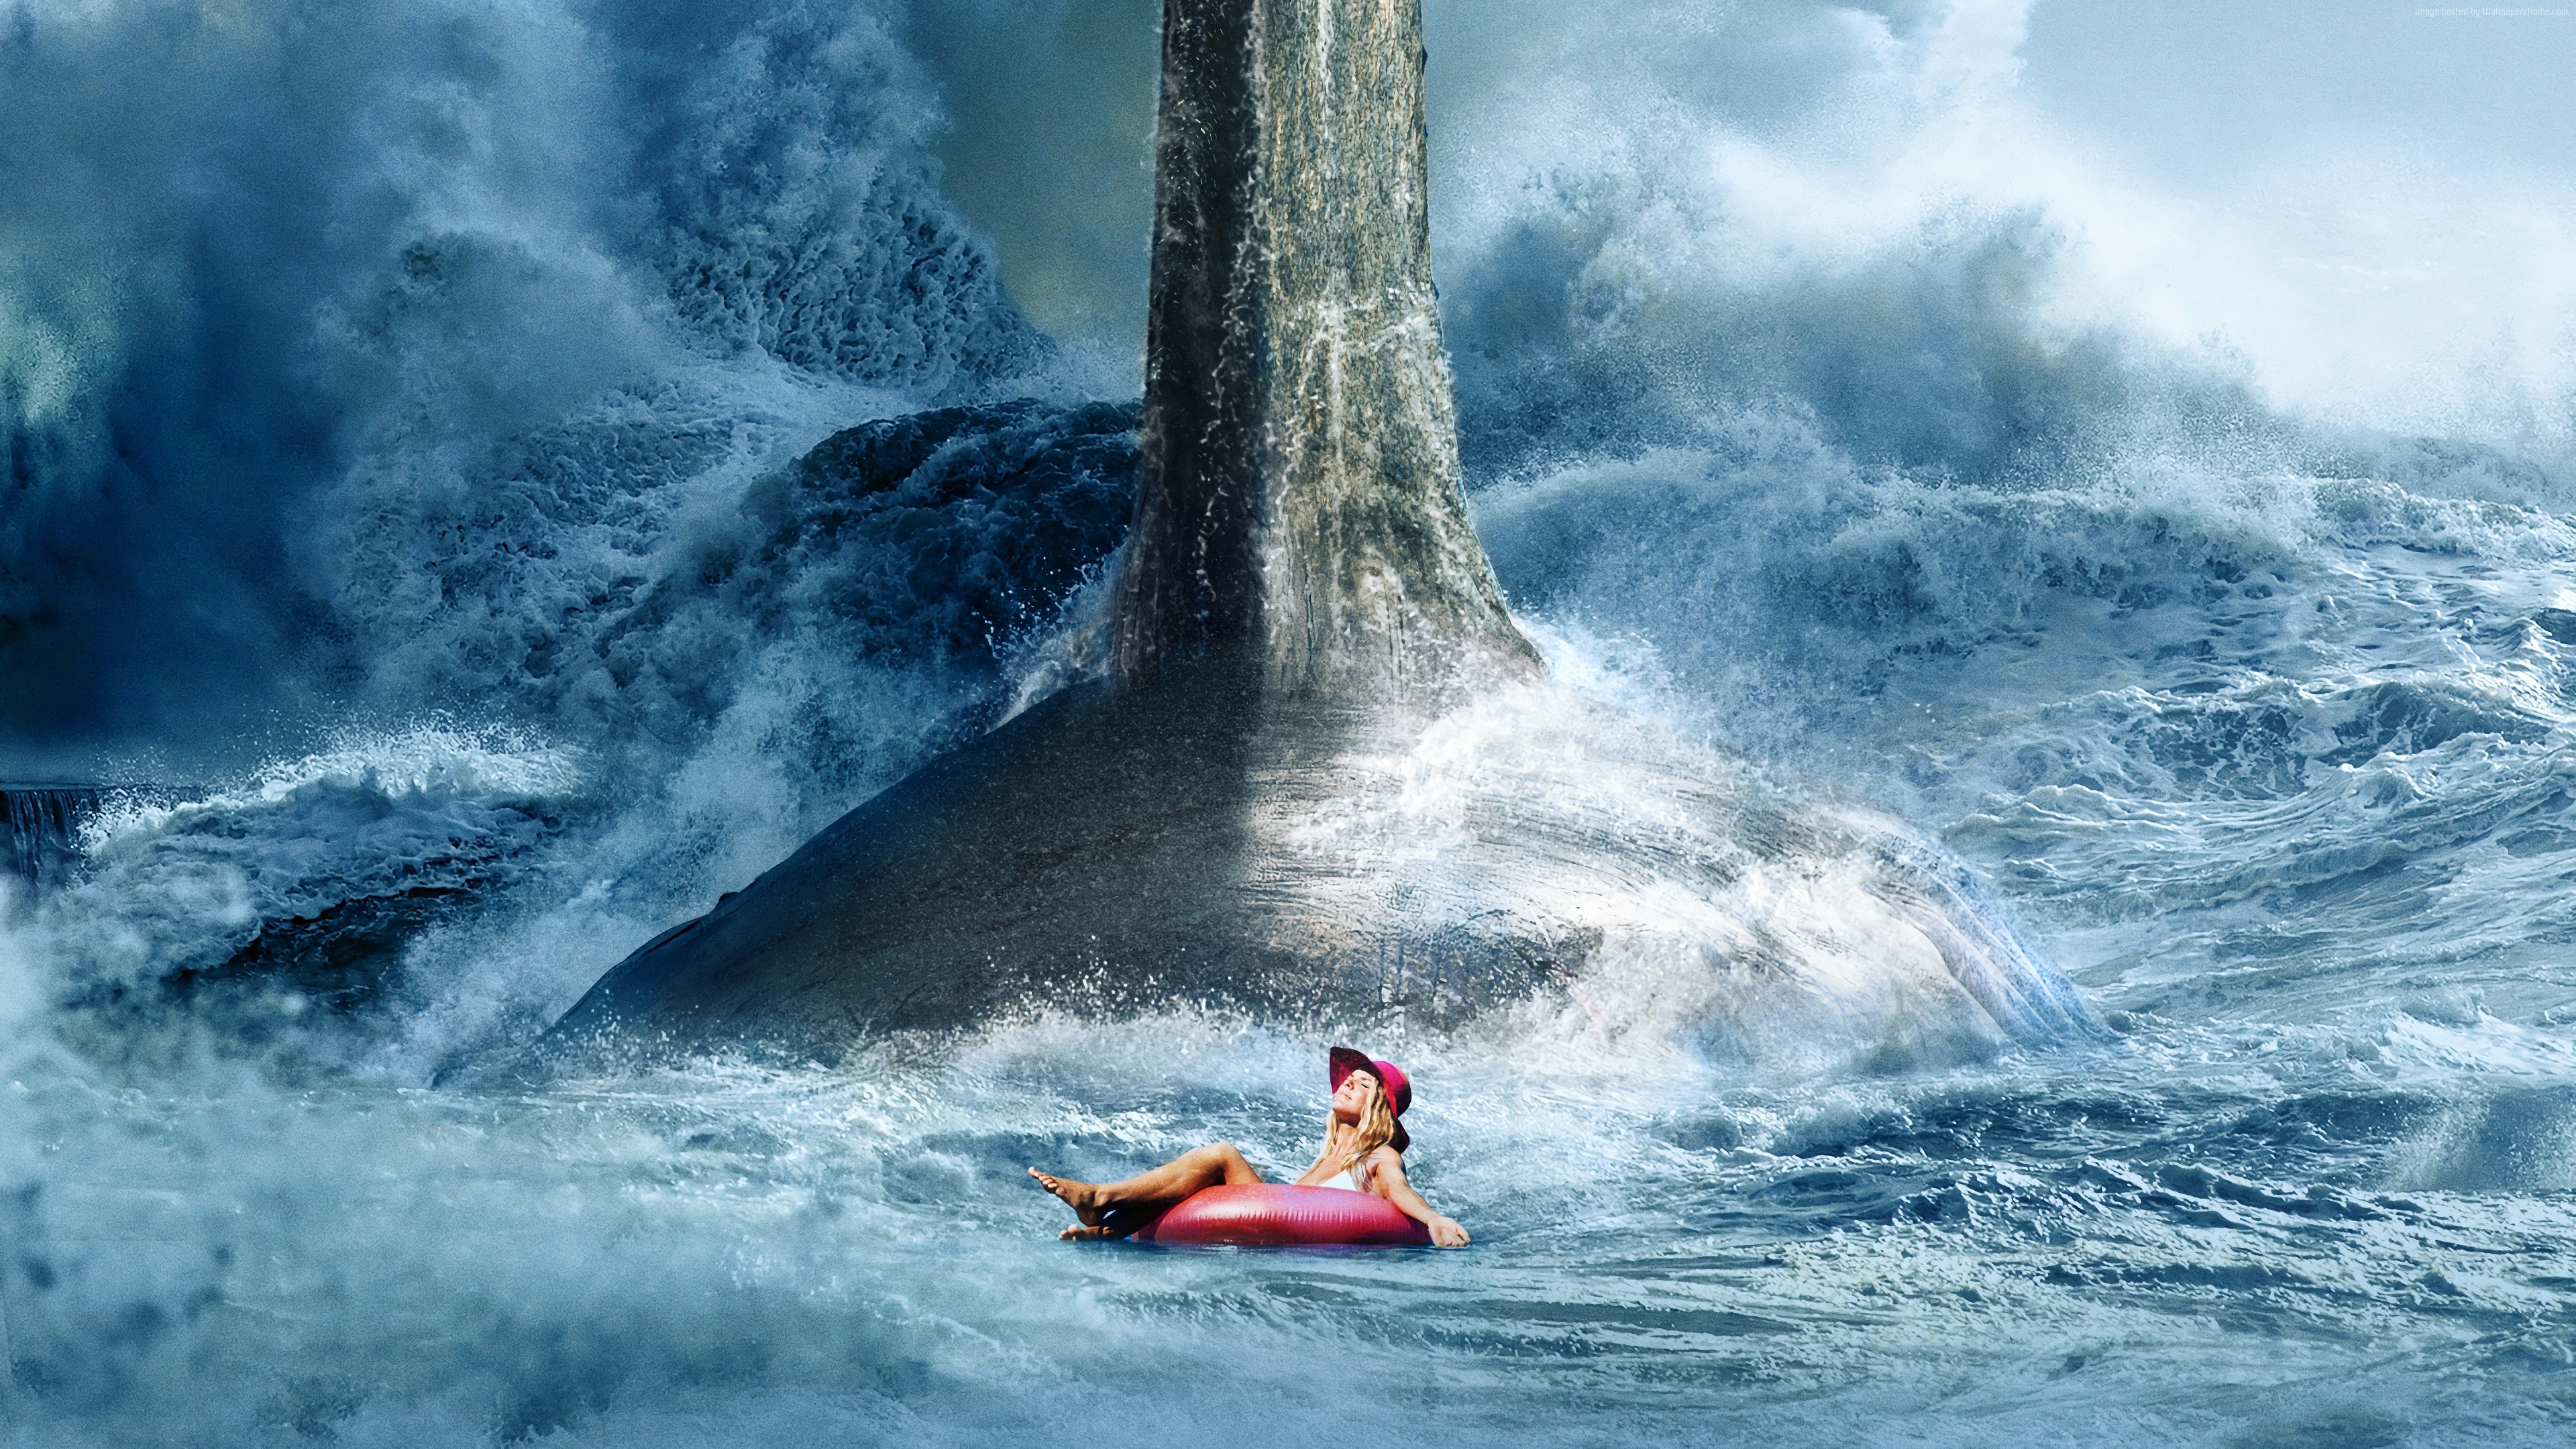 Wallpaper The Meg, poster, 4K, Movies